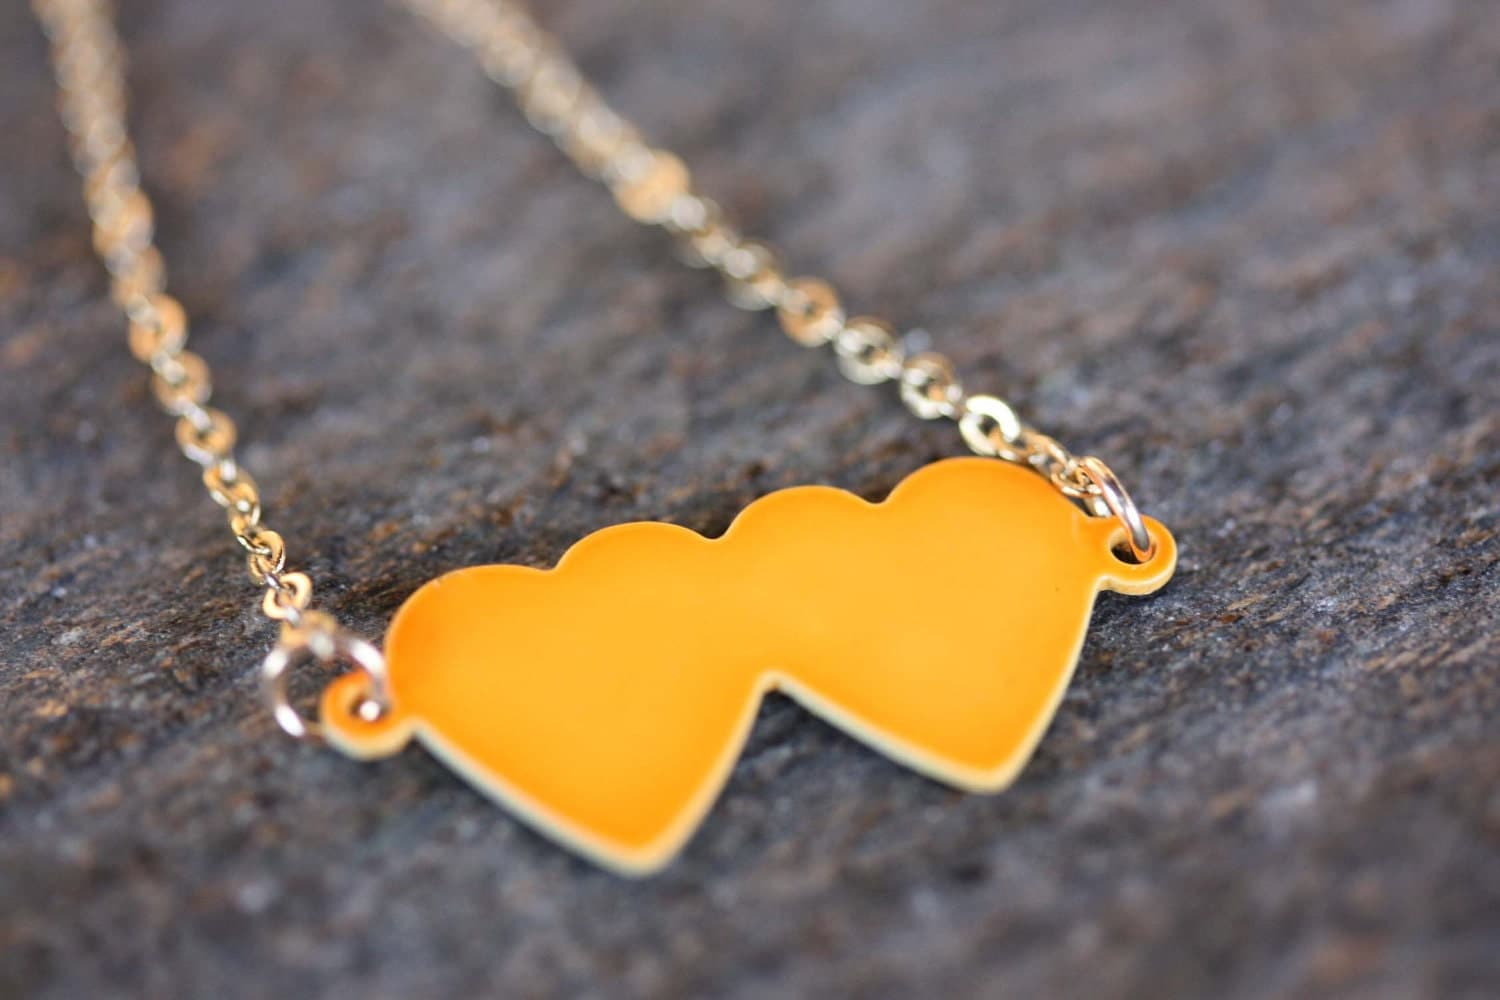 Neon Double Heart Charm Necklace - Orange, Green, or Yellow - diamentdesigns